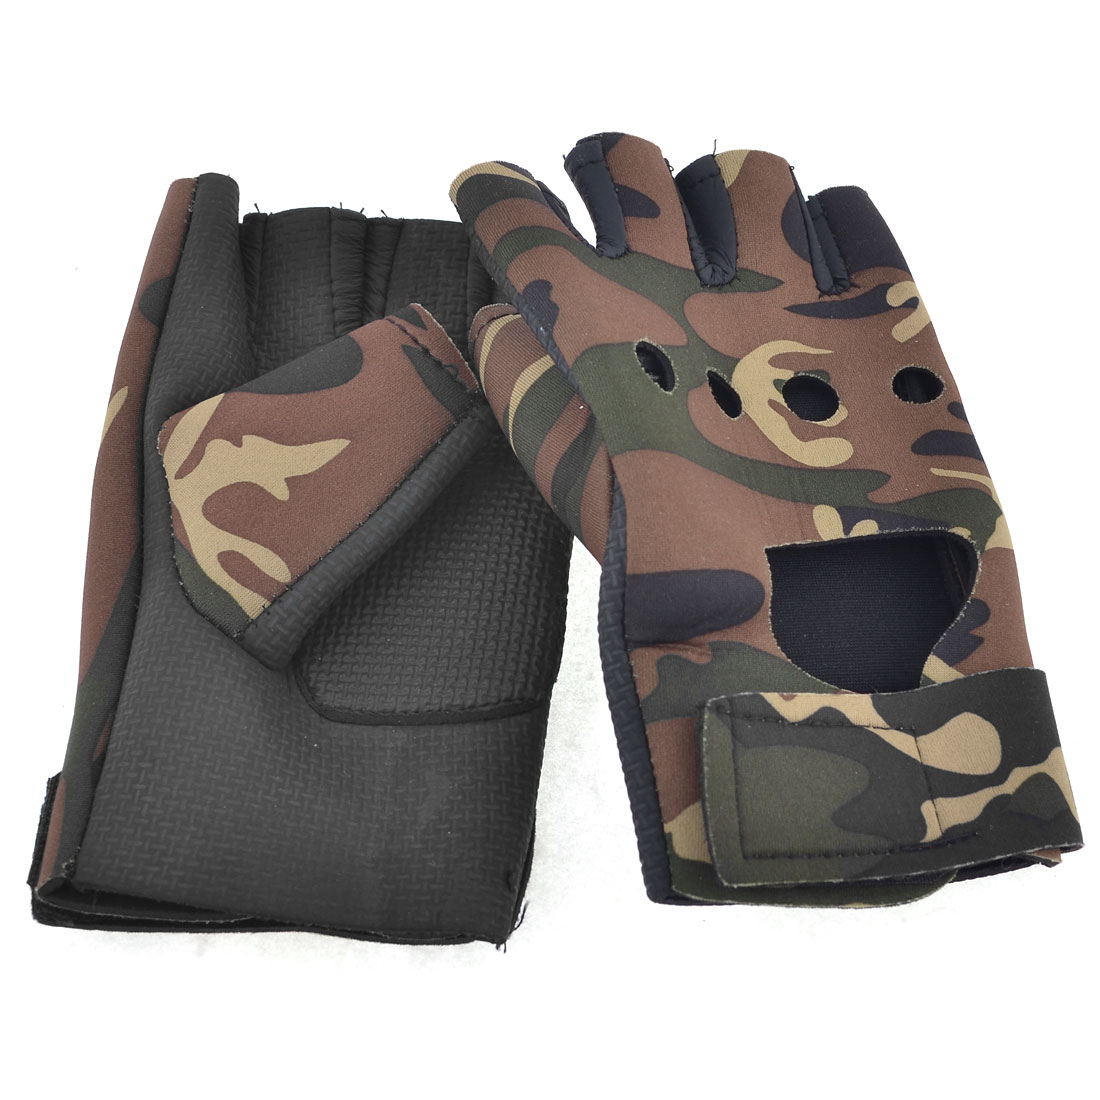 Hook Loop Strap Nonslip Palm Breath Freely Gloves Black Camouflage for Men